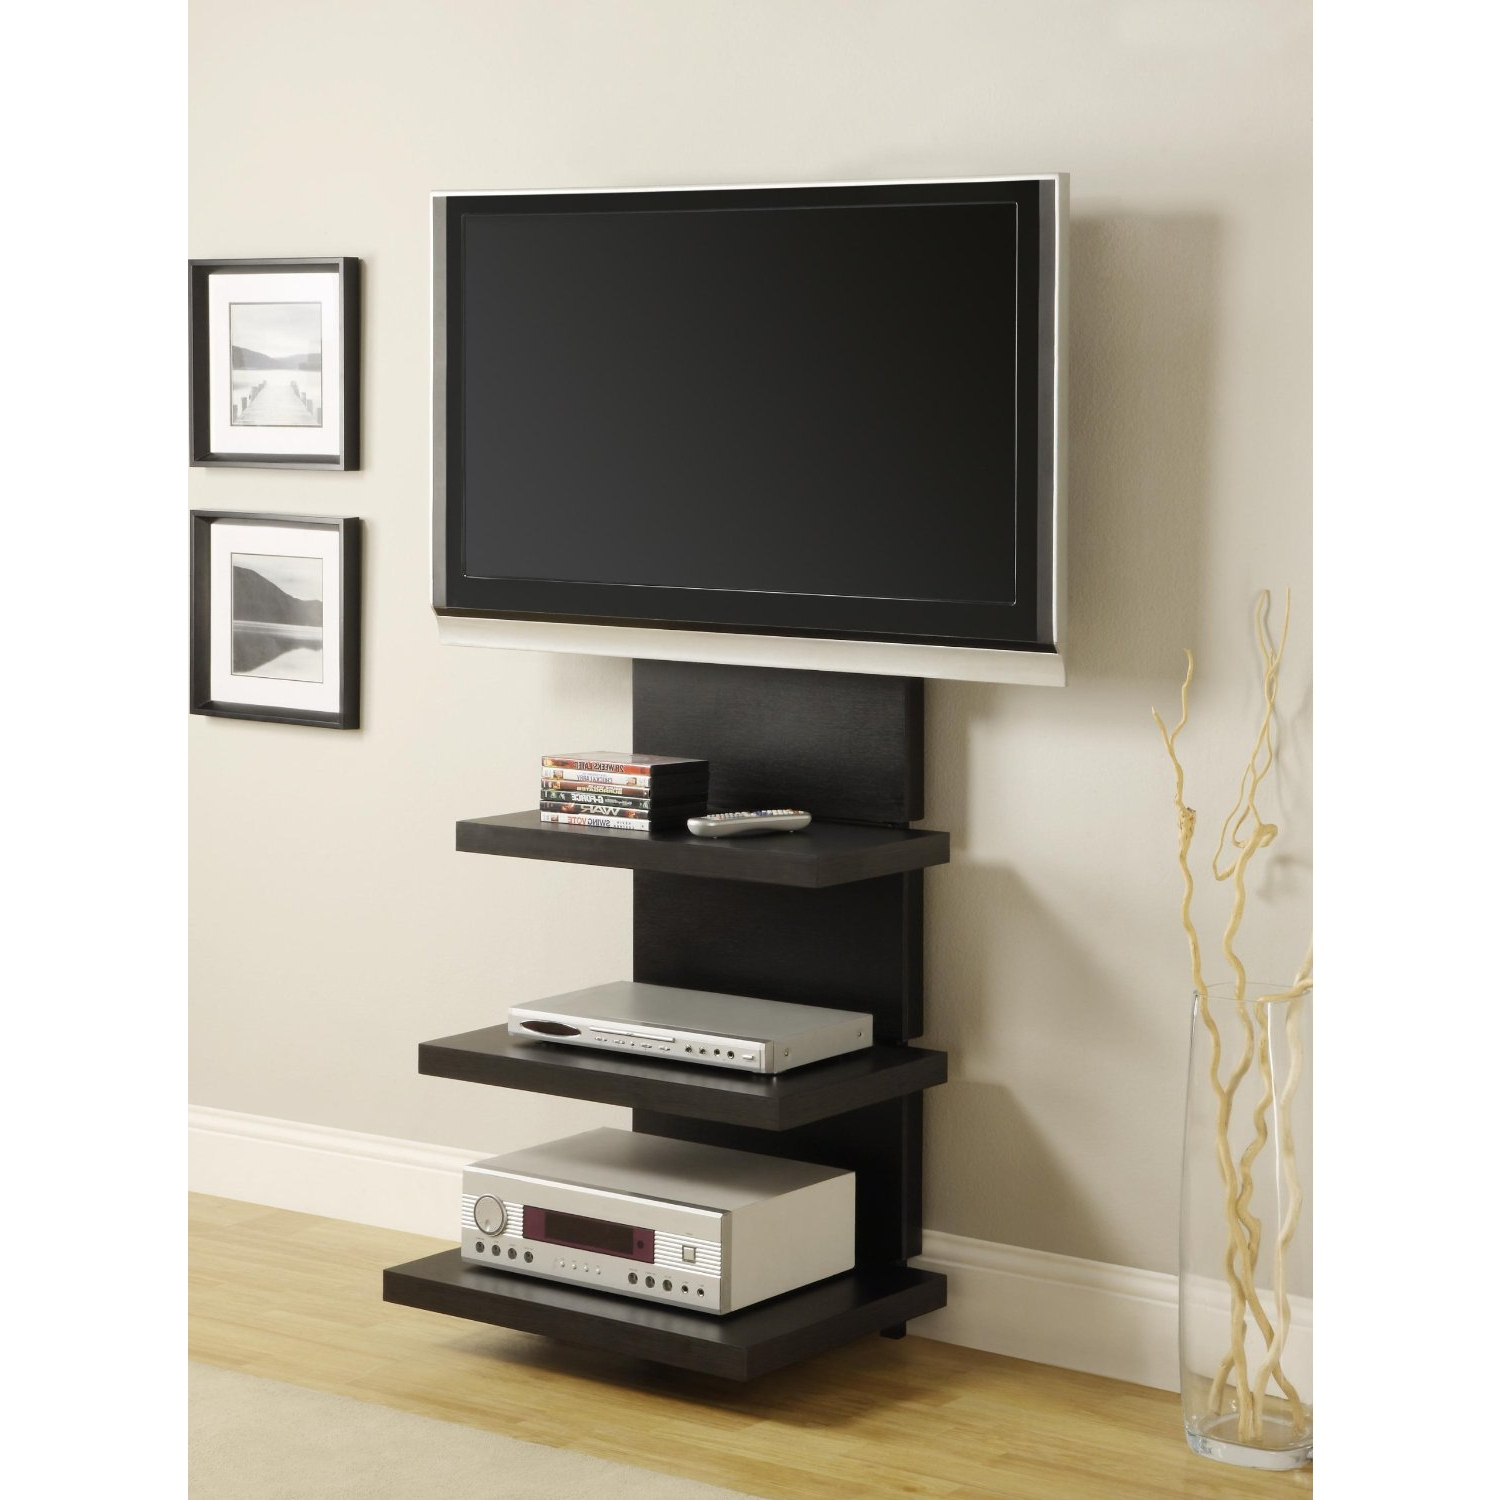 Tall Tv Cabinets Corner Unit Regarding Fashionable Bedroom Television Cabinets And Stands Small Corner Tv Unit Tall Tv (View 4 of 20)